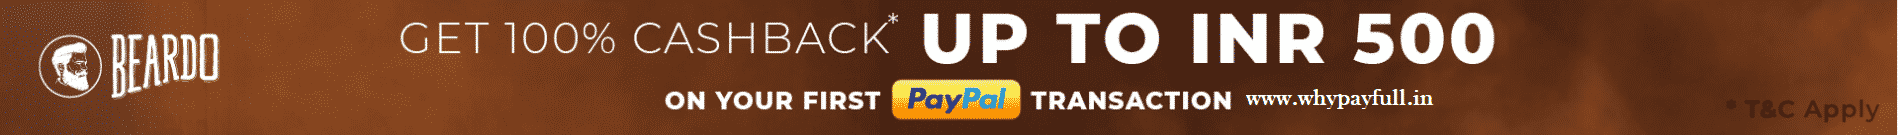 Beardo: Get 100% Cashback up to Rs.500 on your First Paypal Transaction